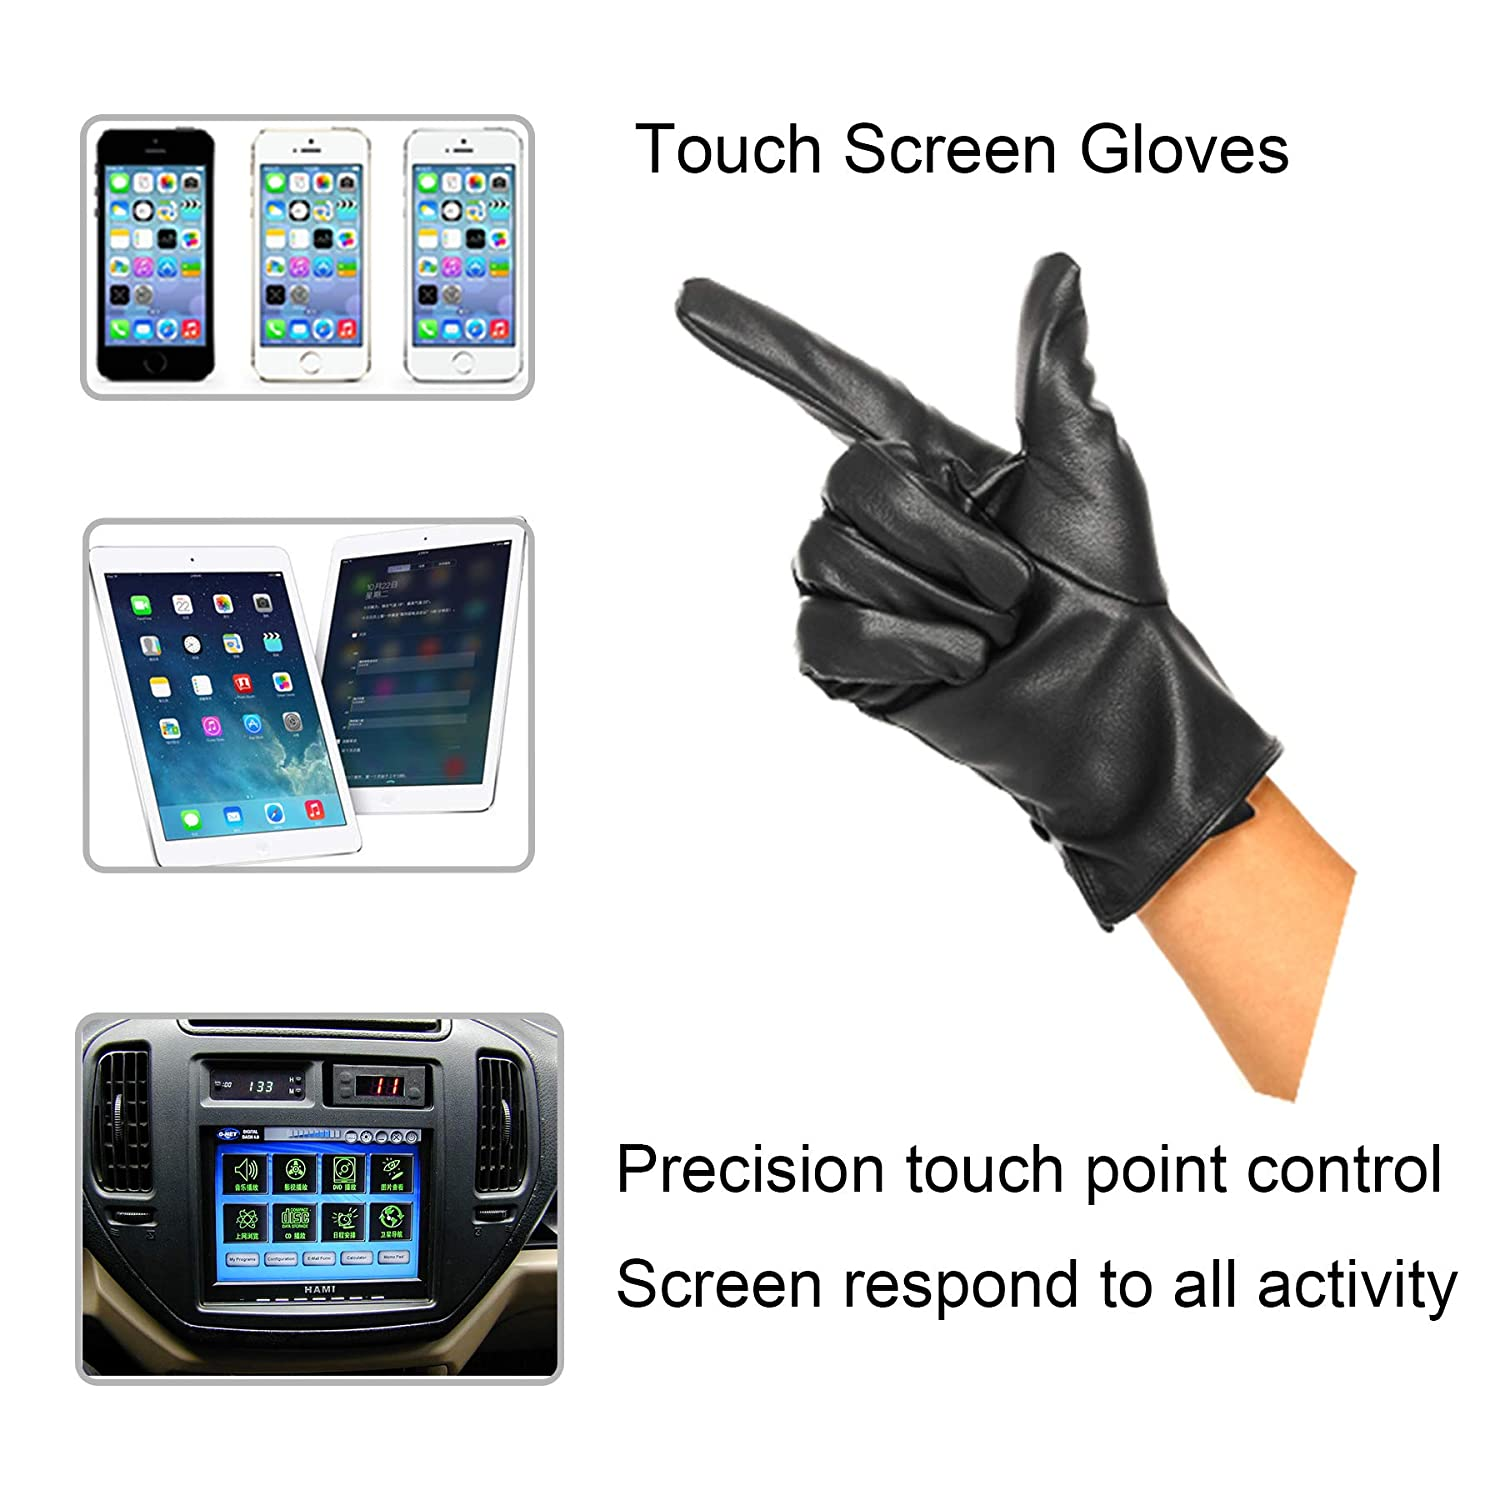 XL,Black Soul Young Leather Driving Gloves For Men Touchscreen Texting Winter Warm Black